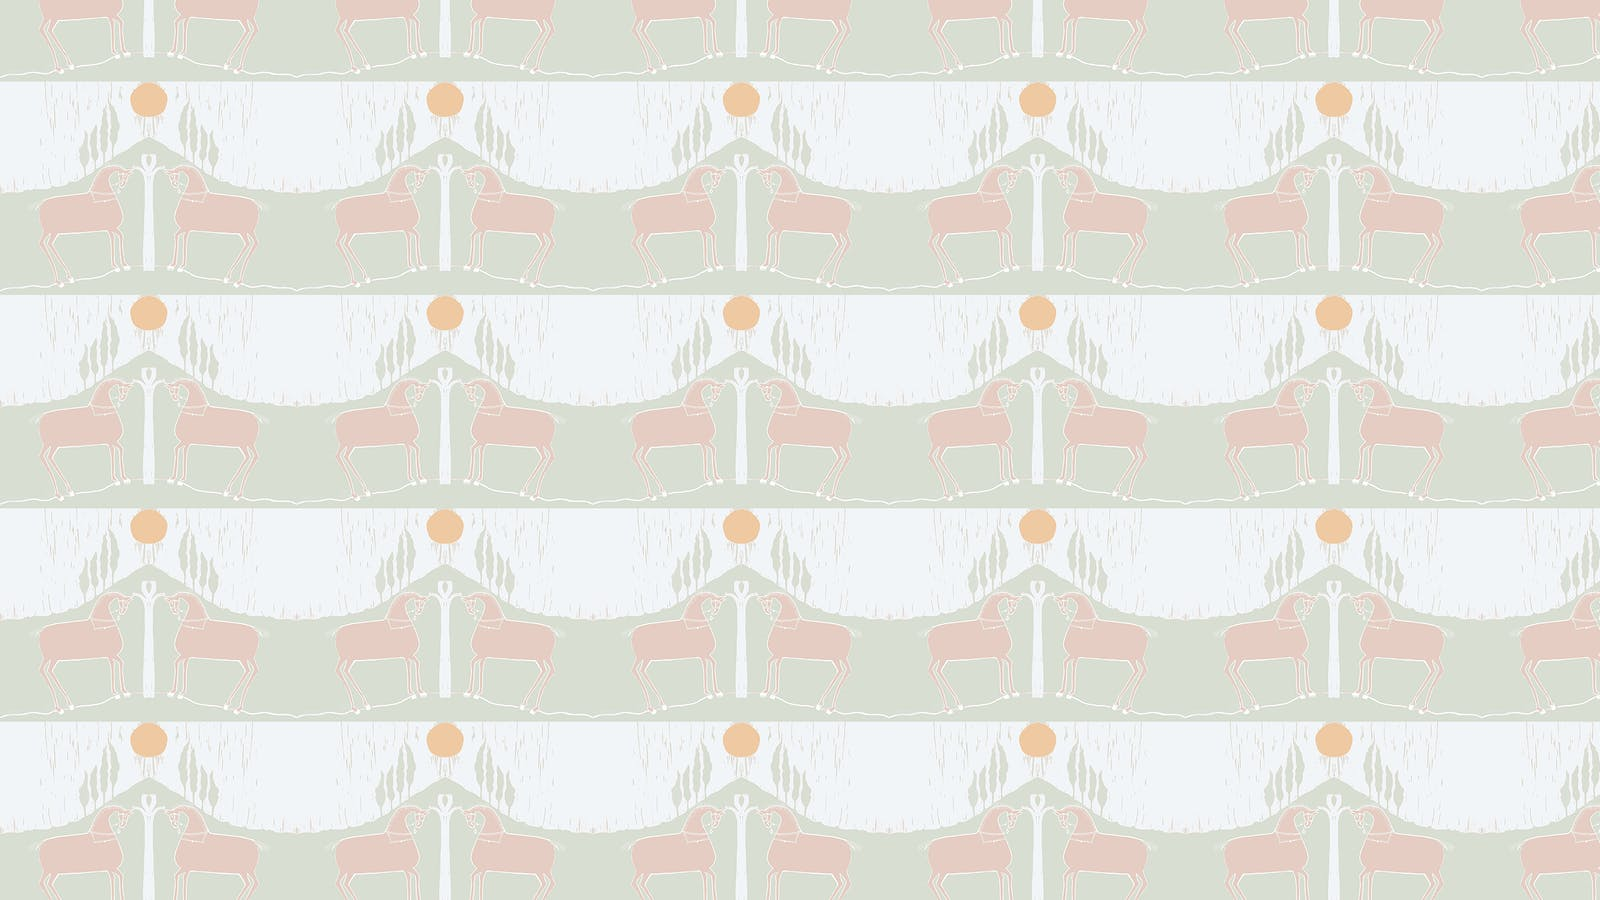 Lick x Annika Reed Western 02 white and mint green animal wallpaper